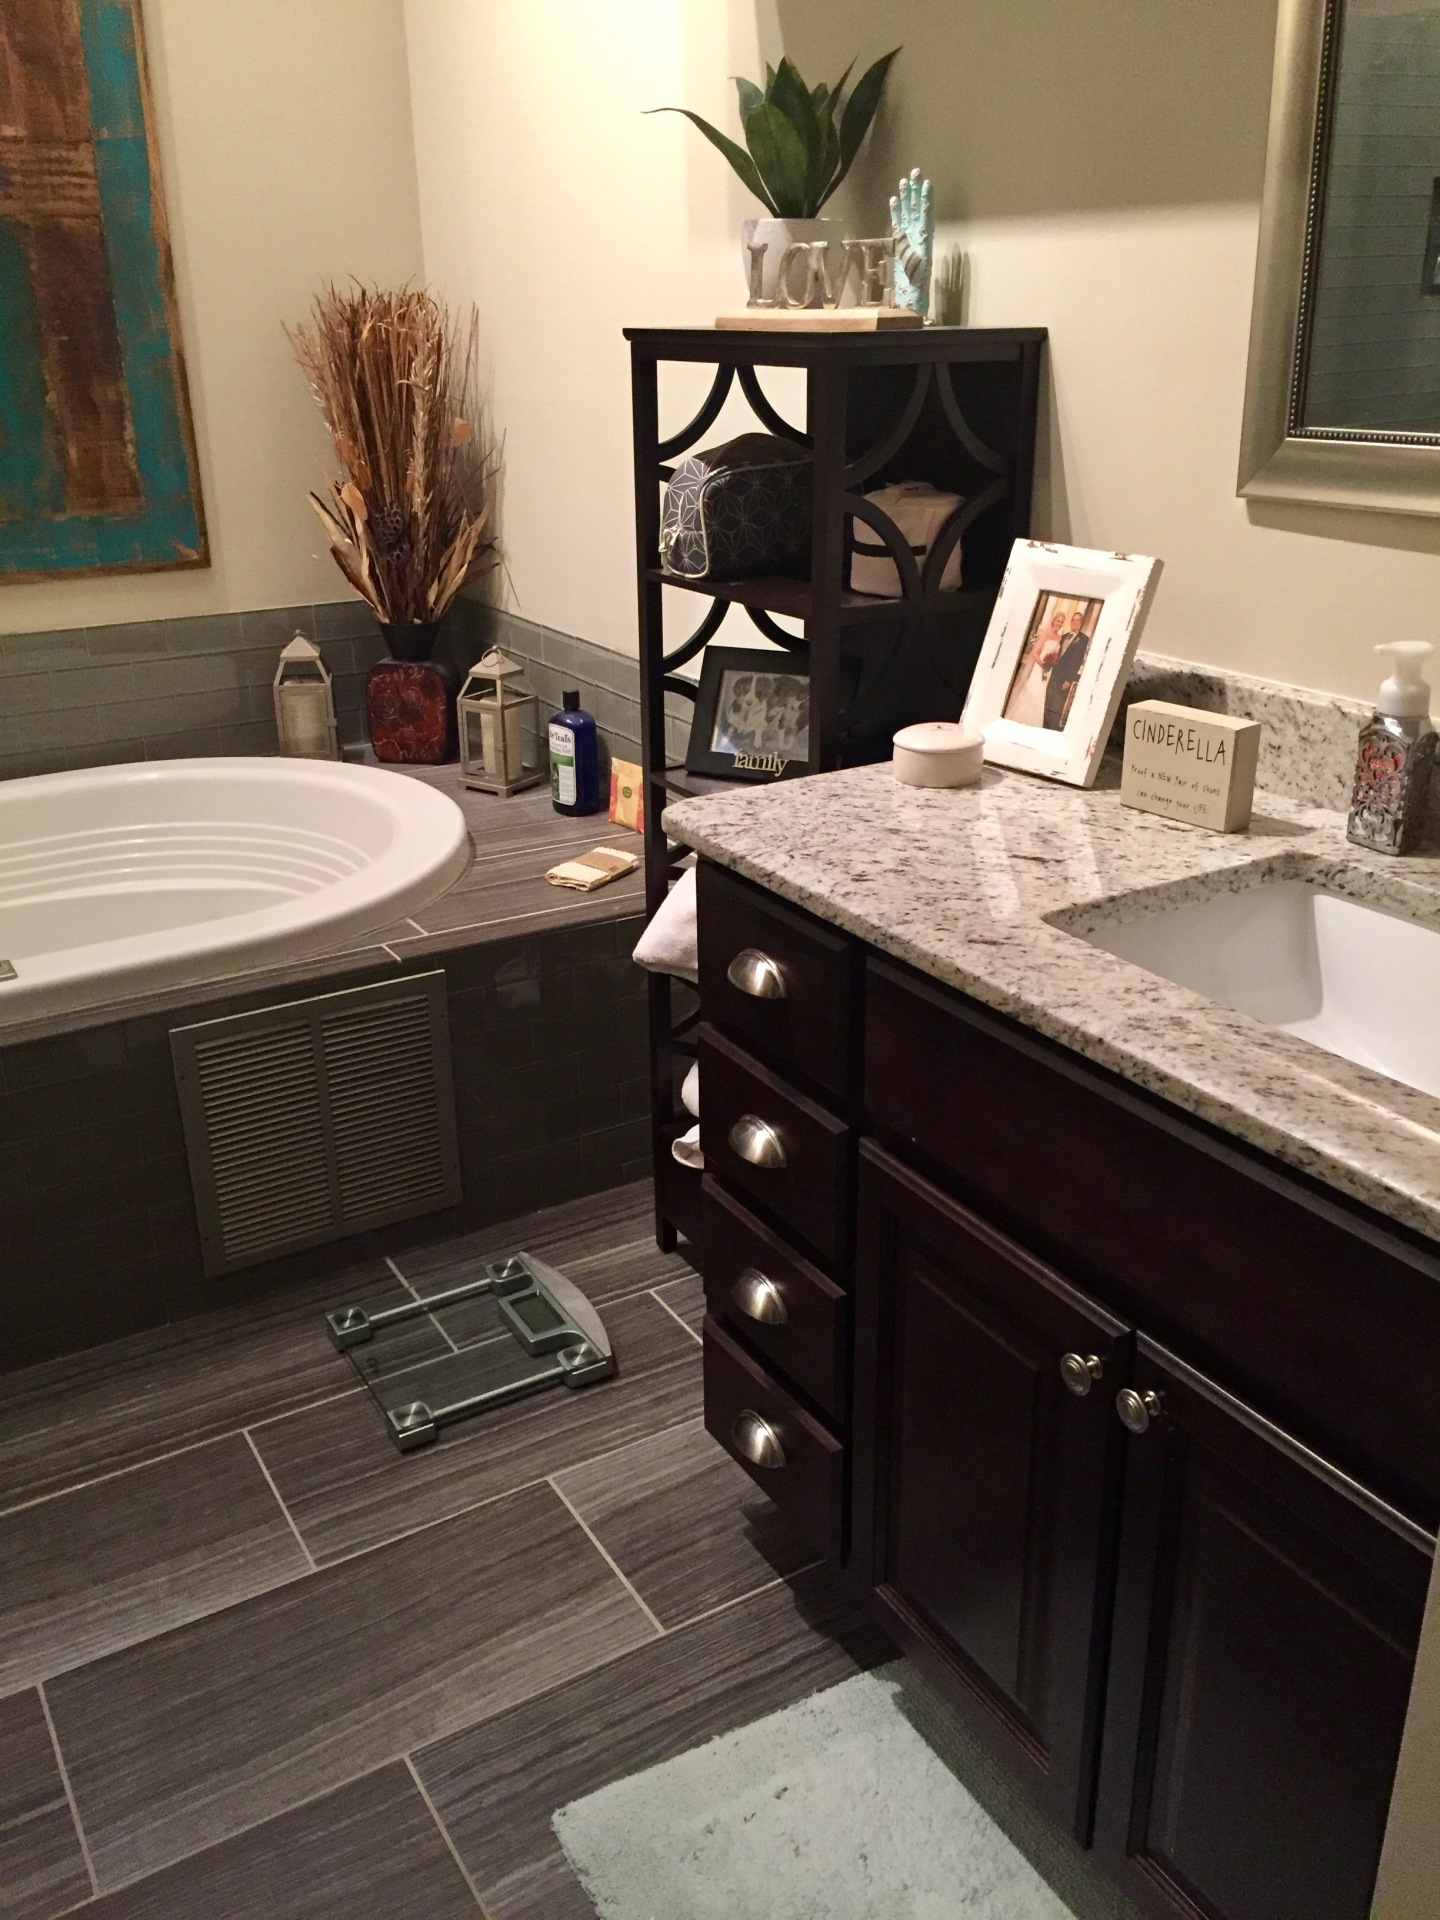 sinks, bathroom, his and her, cabinets